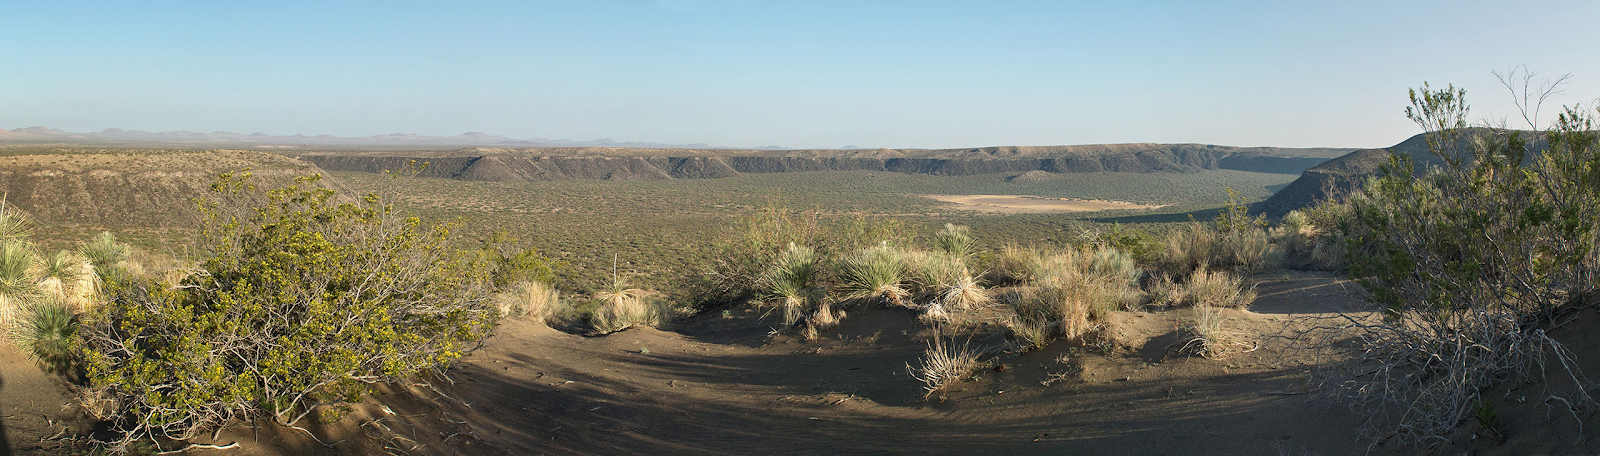 Kilbourne Hole Volcanic Crater